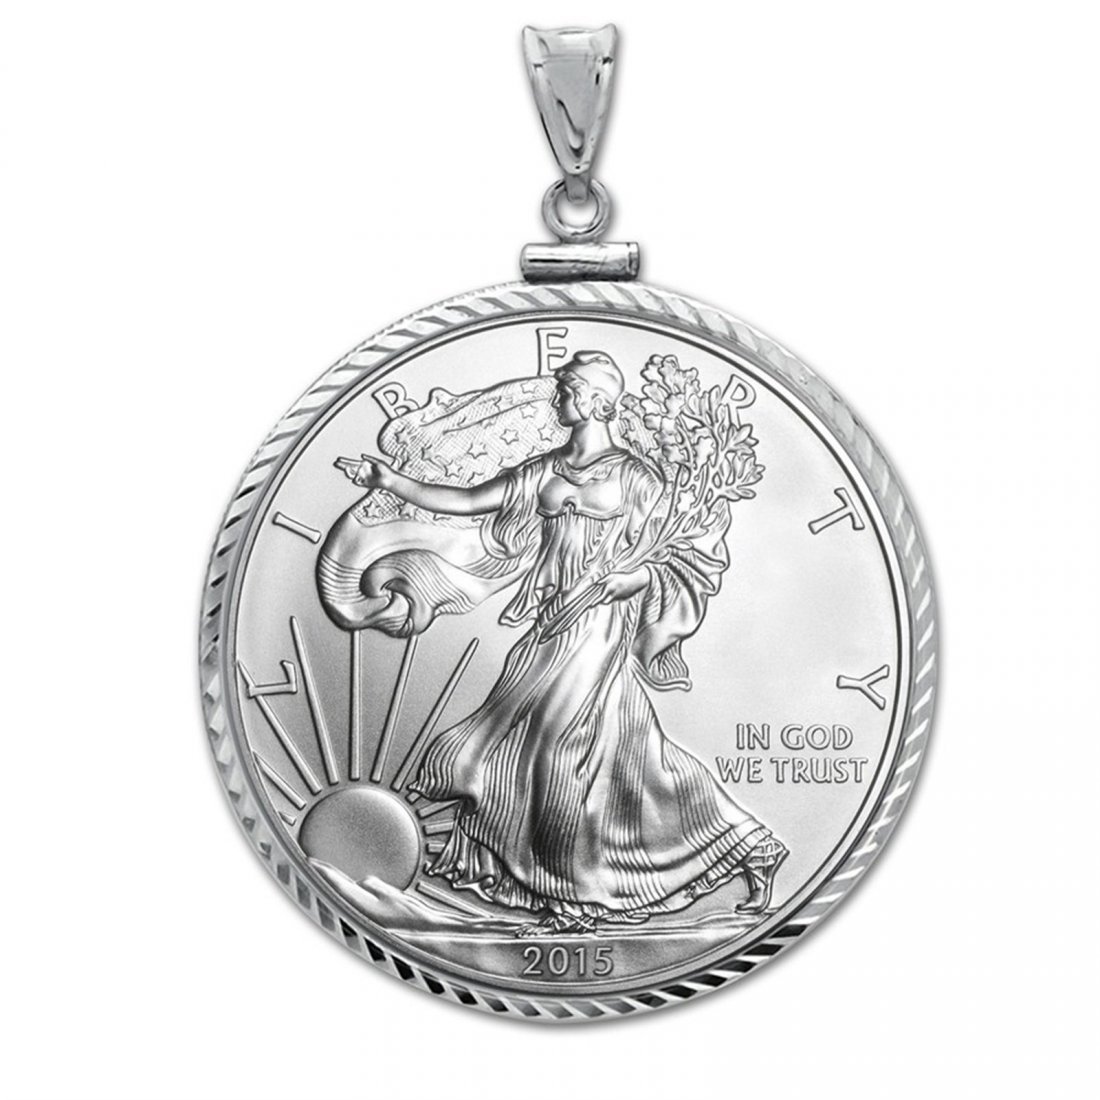 2015 1 oz Silver Eagle Pendant (Diamond-ScrewTop Bezel)